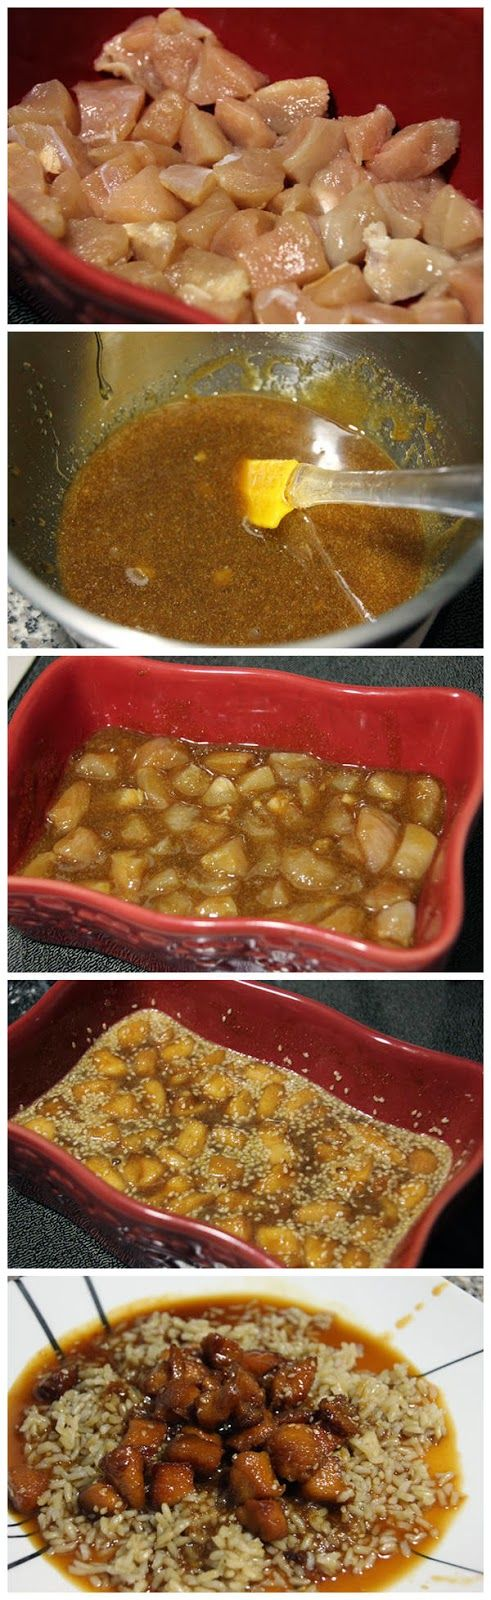 Quick & Easy Recipe : Sesame Chicken   Ingredients 4 chicken tenderloins, cut into small pieces 1/2 cup honey 1/4 cup brown sugar 2 tbsp soy sauce 1 tbsp garlic powder sesame seeds, to taste 1 package of brown rice